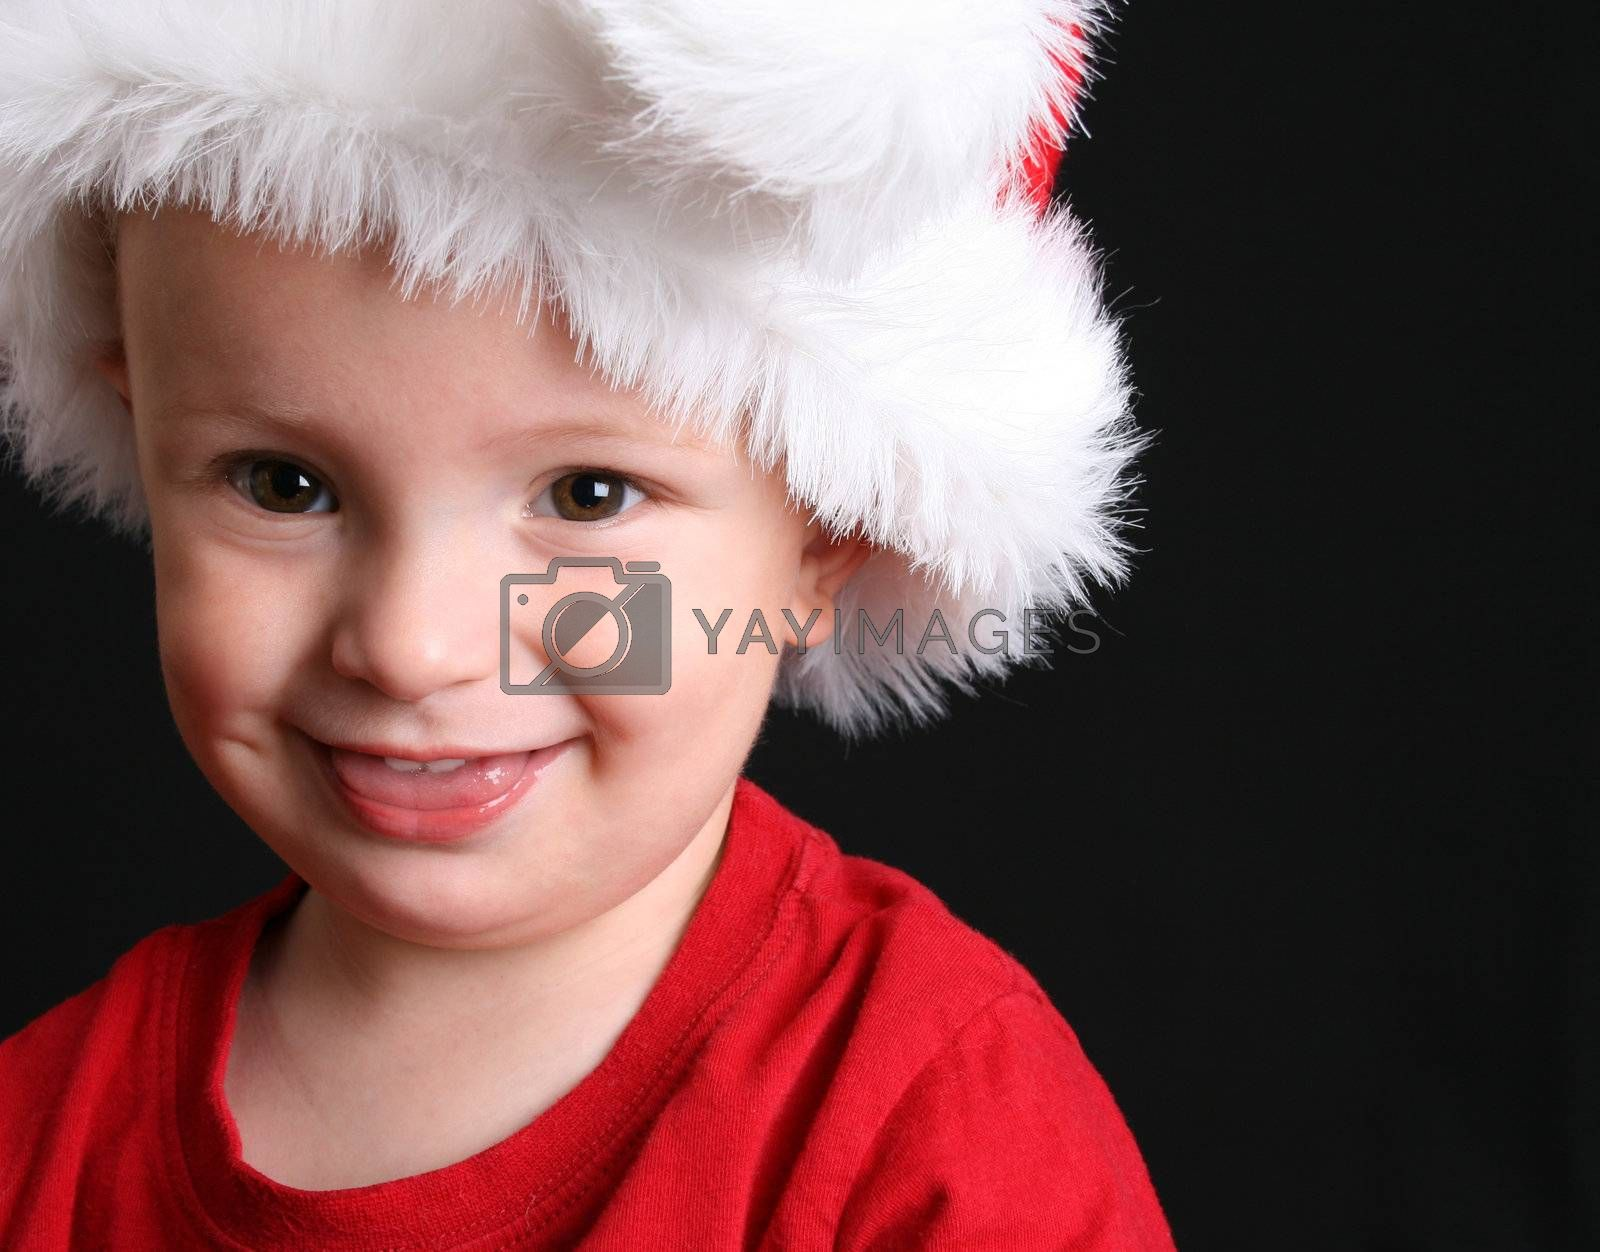 Blonde toddler against a black background wearing a christmas hat